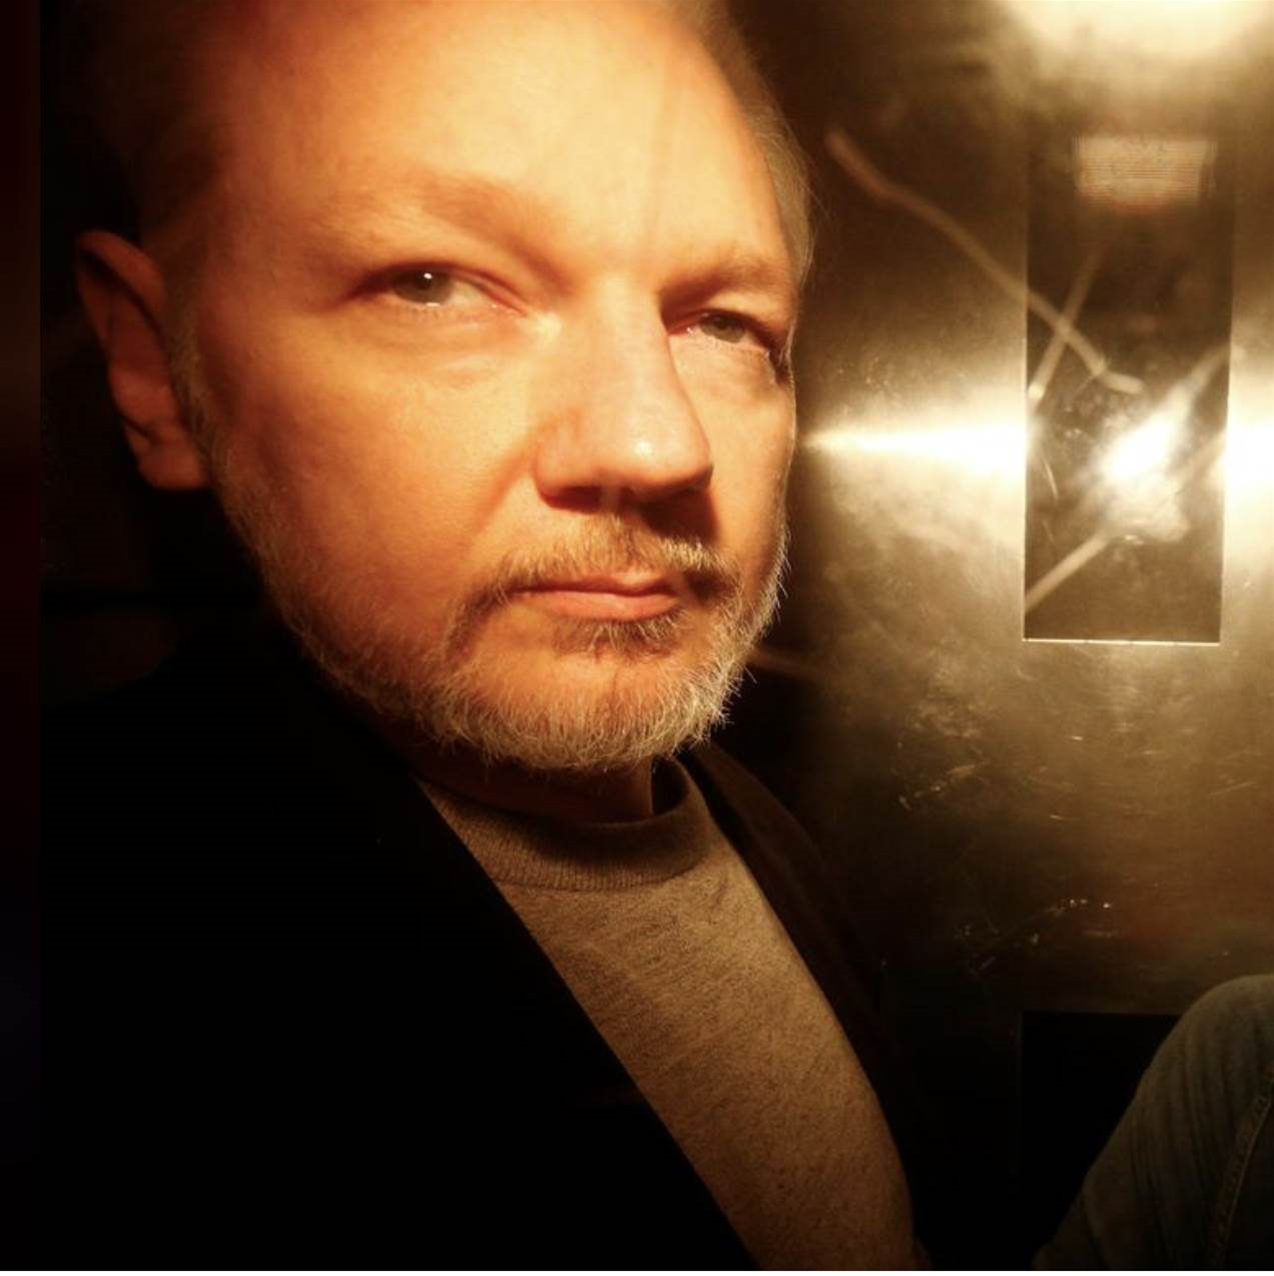 Assange sentenced to 50 weeks prison for skipping bail